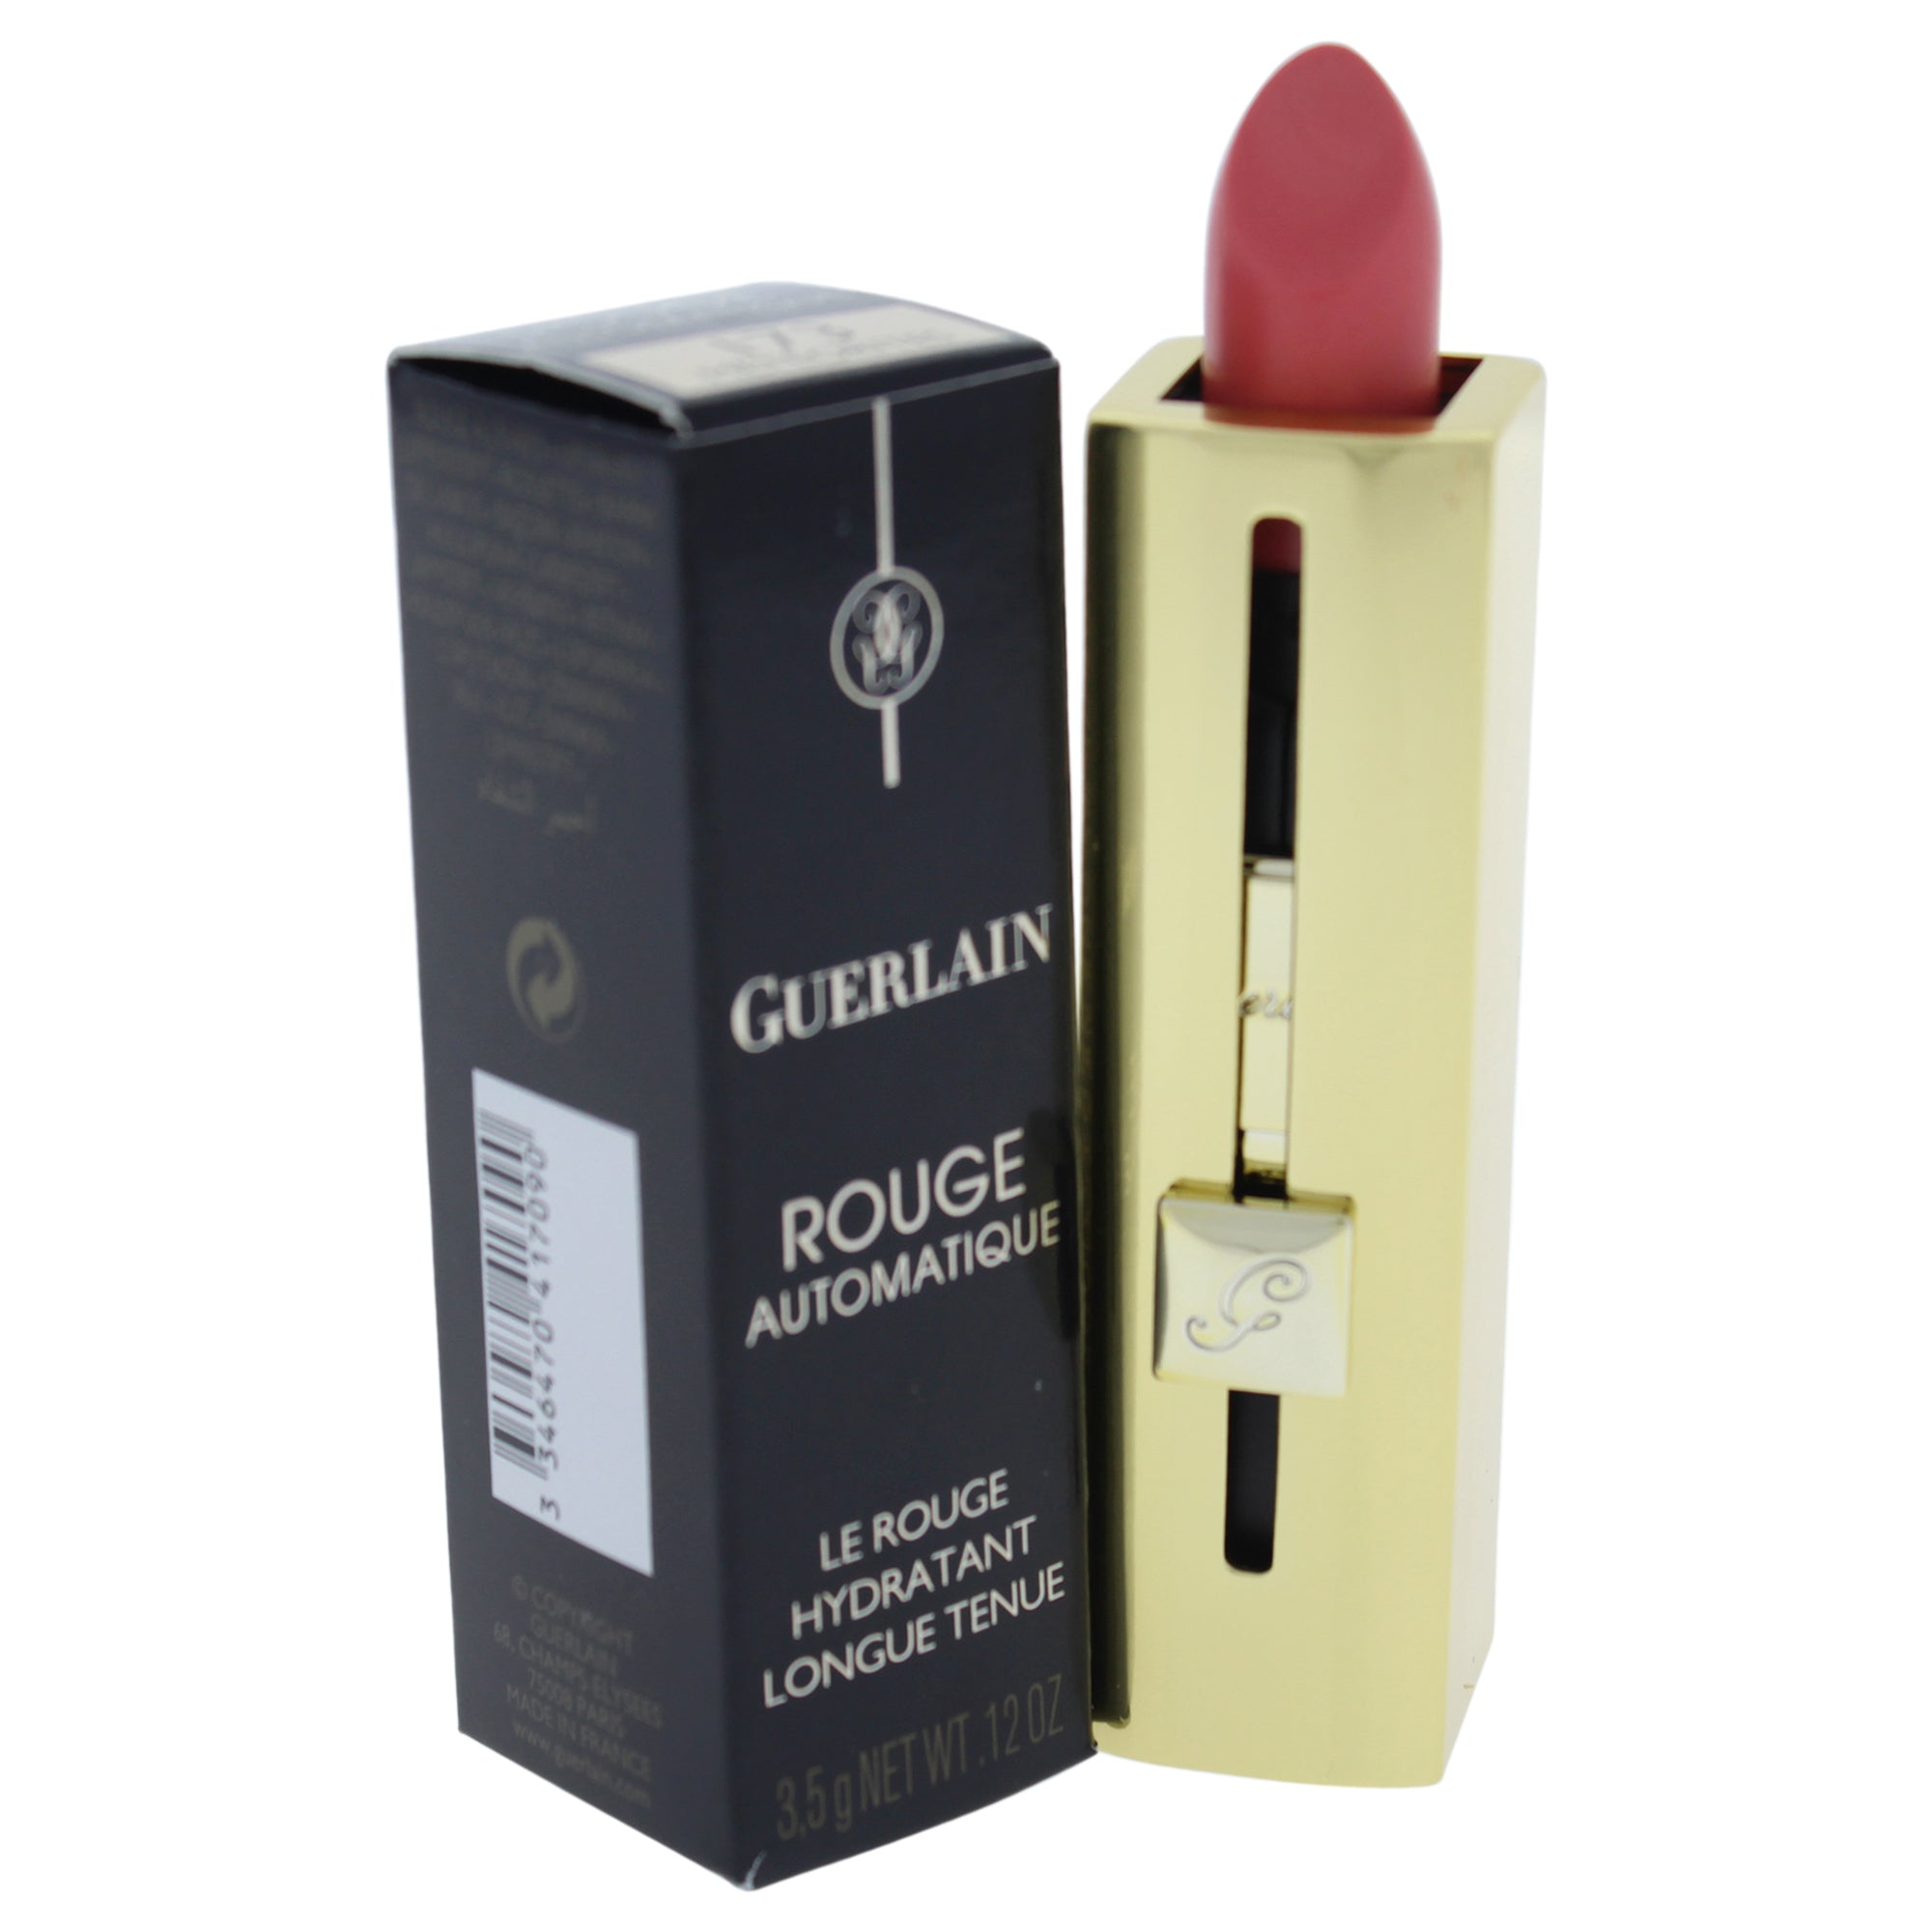 Guerlain Rouge Automatique Long Lasting Lip Colour